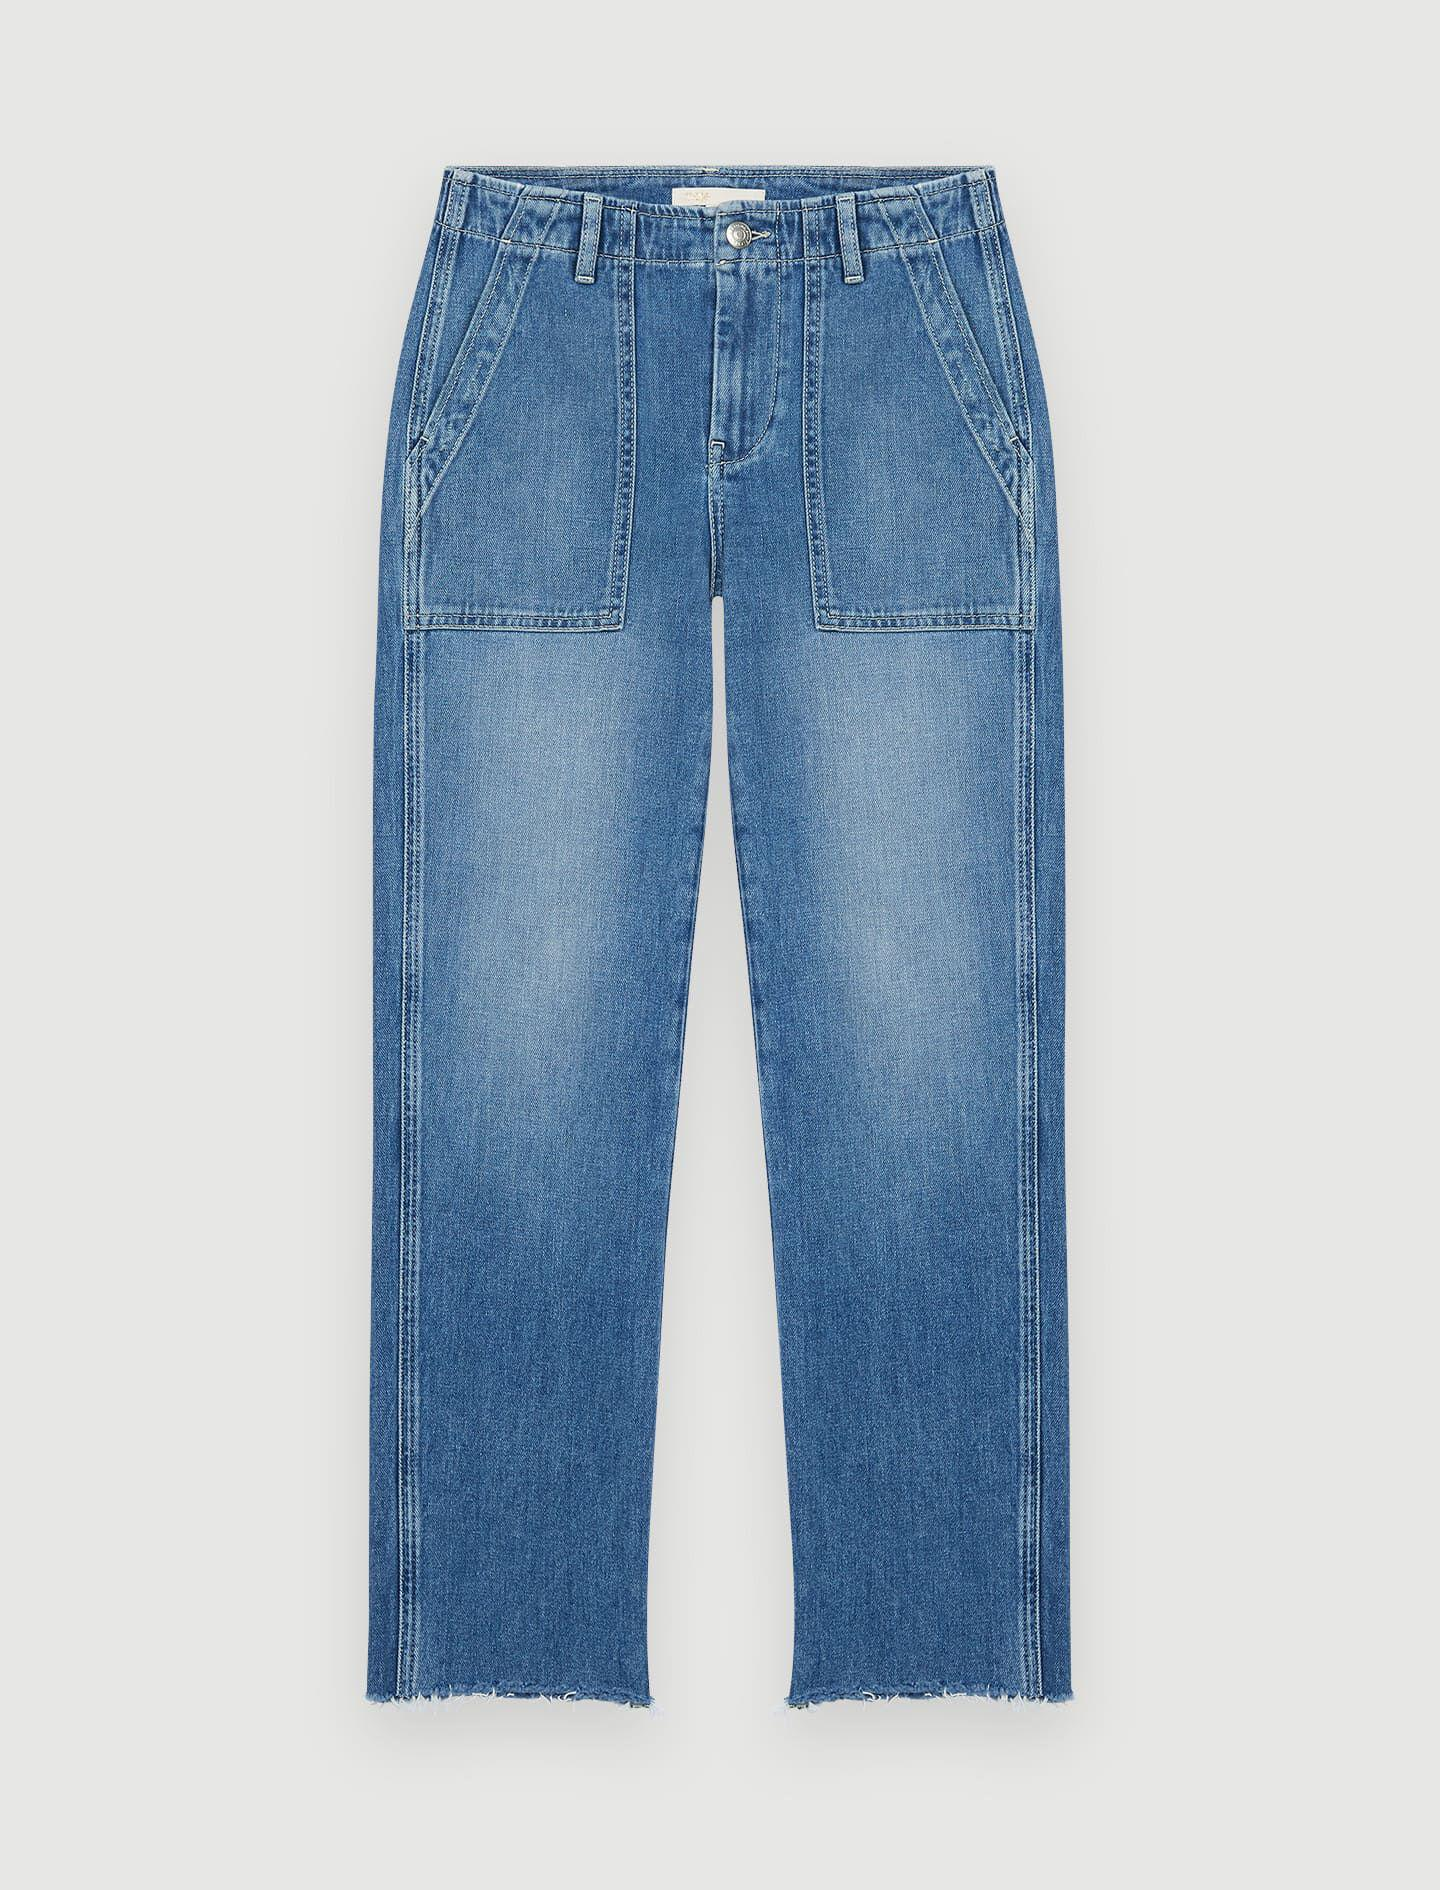 JEANS WITH TOPSTITCHED POCKETS 4